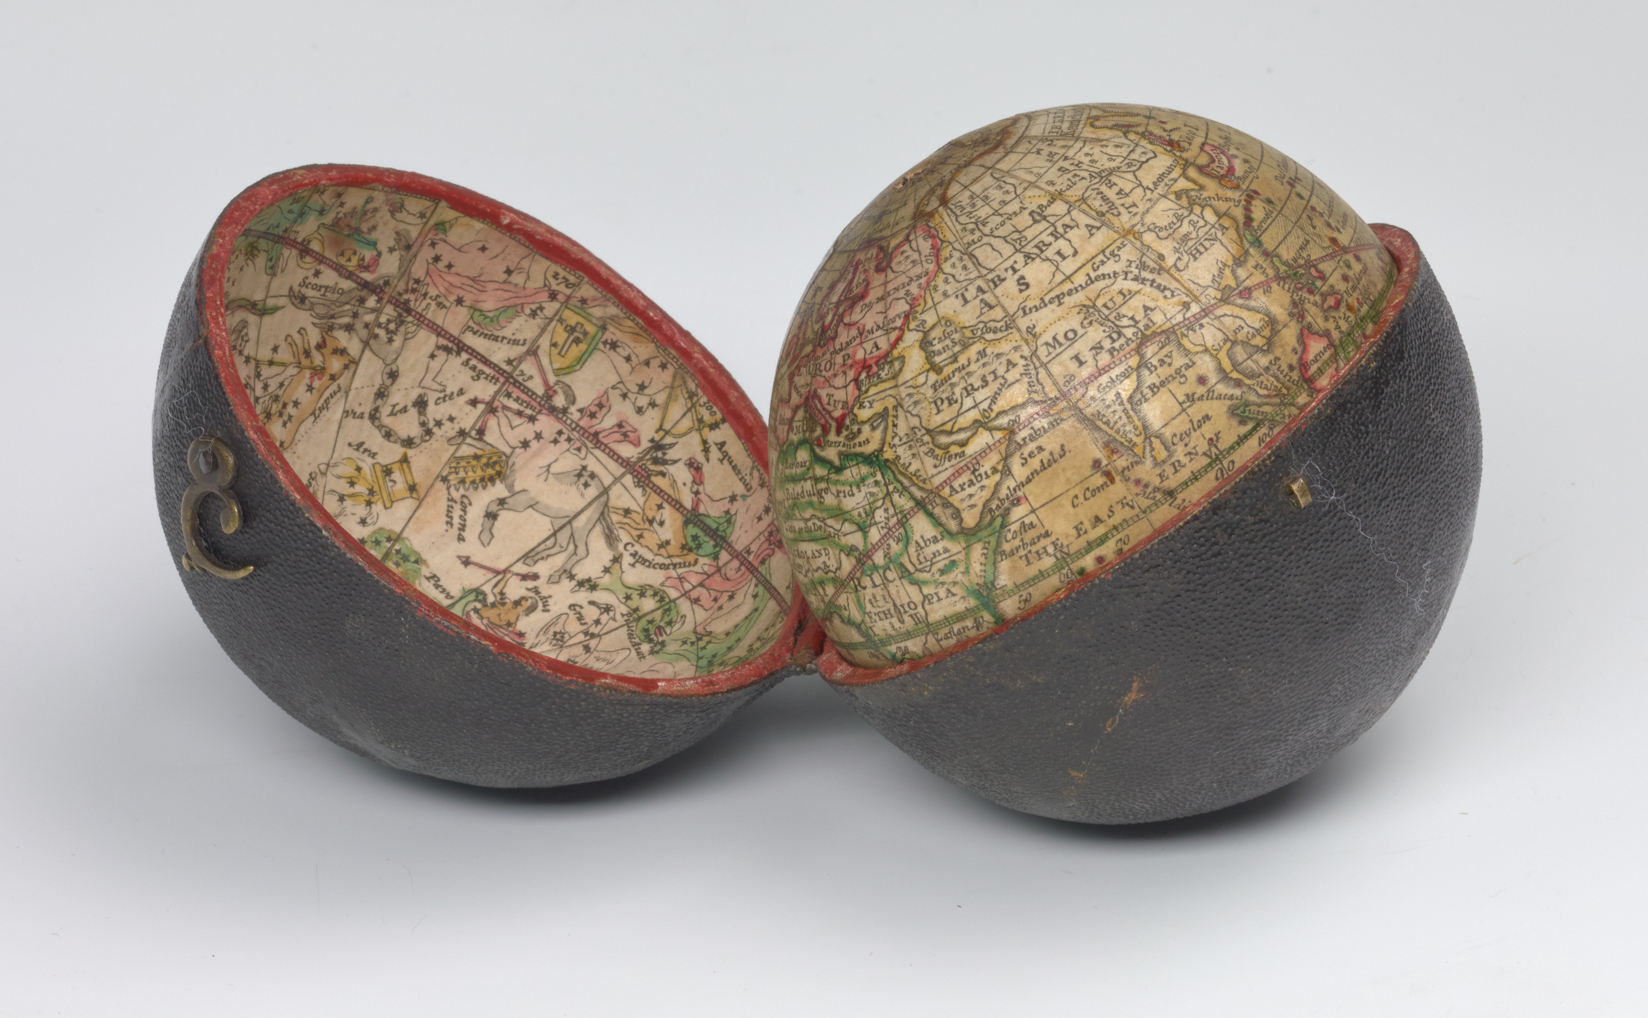 A correct globe with the new discoveries, ca 1775